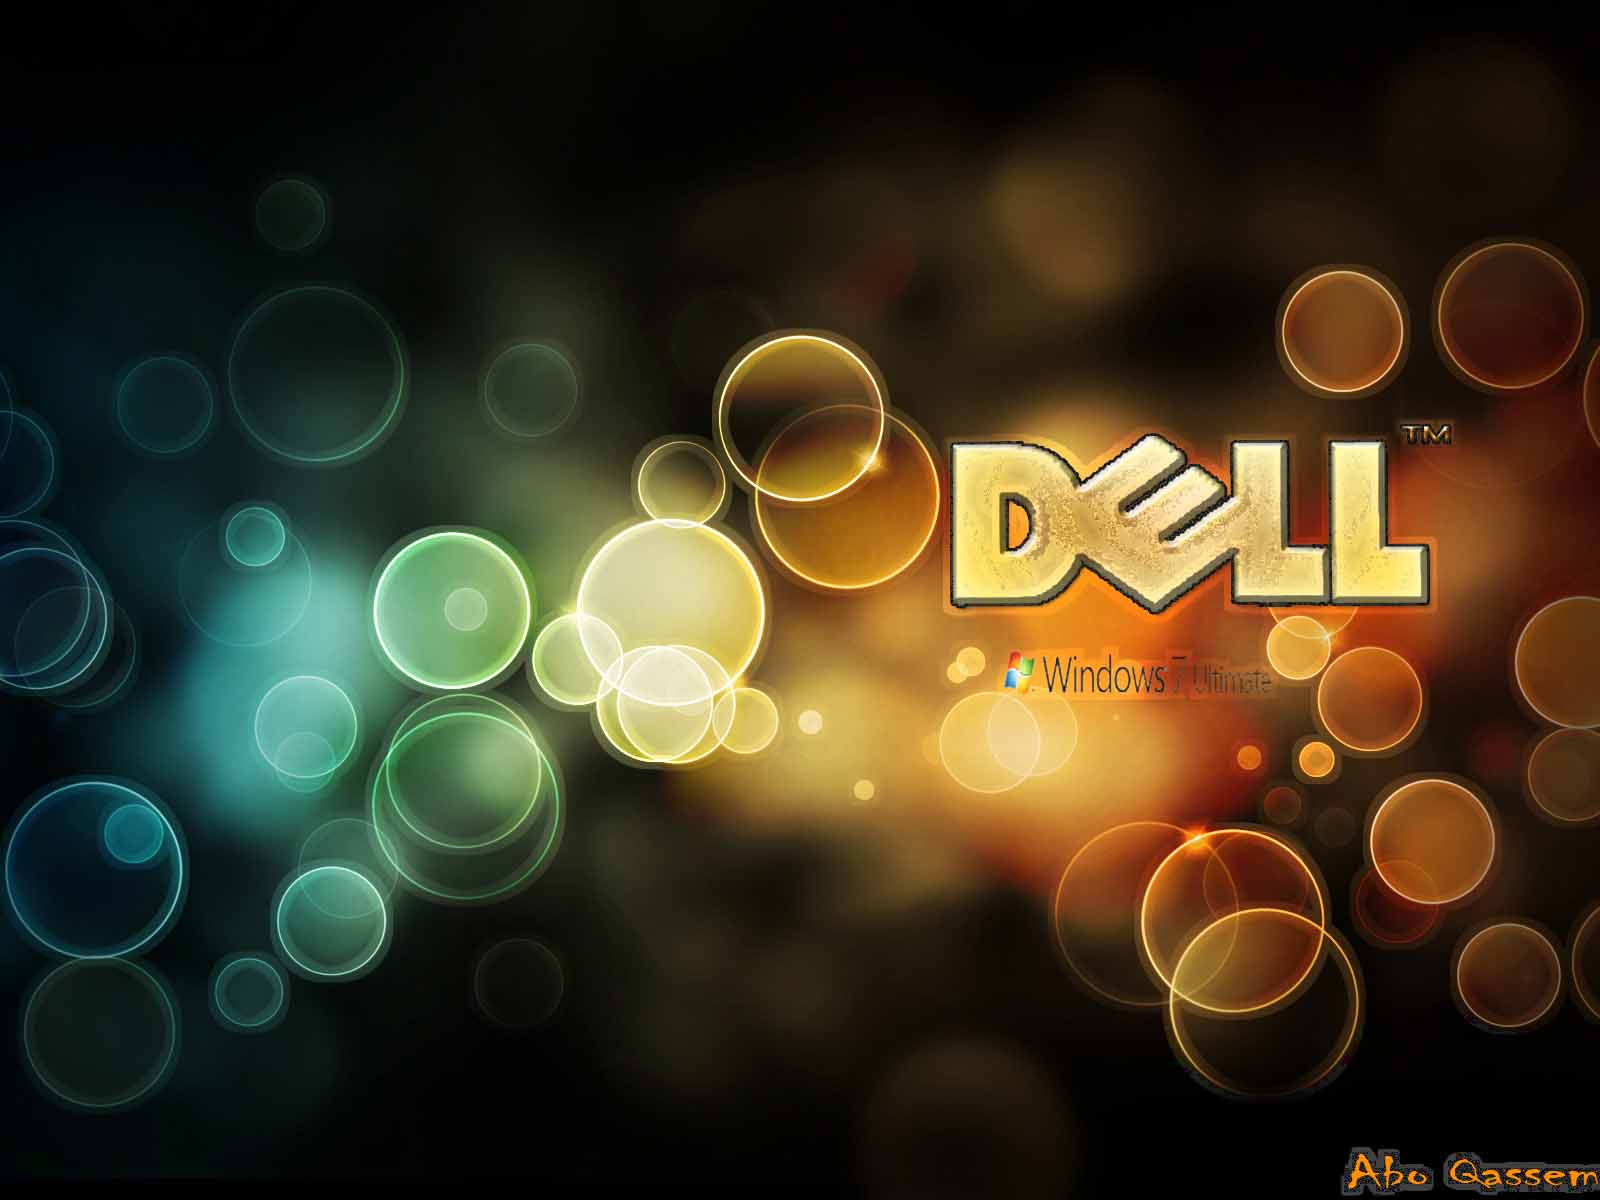 Hd wallpaper home screen - And Wallpapers Also Find Here Top Quality Wallpapers For Free To